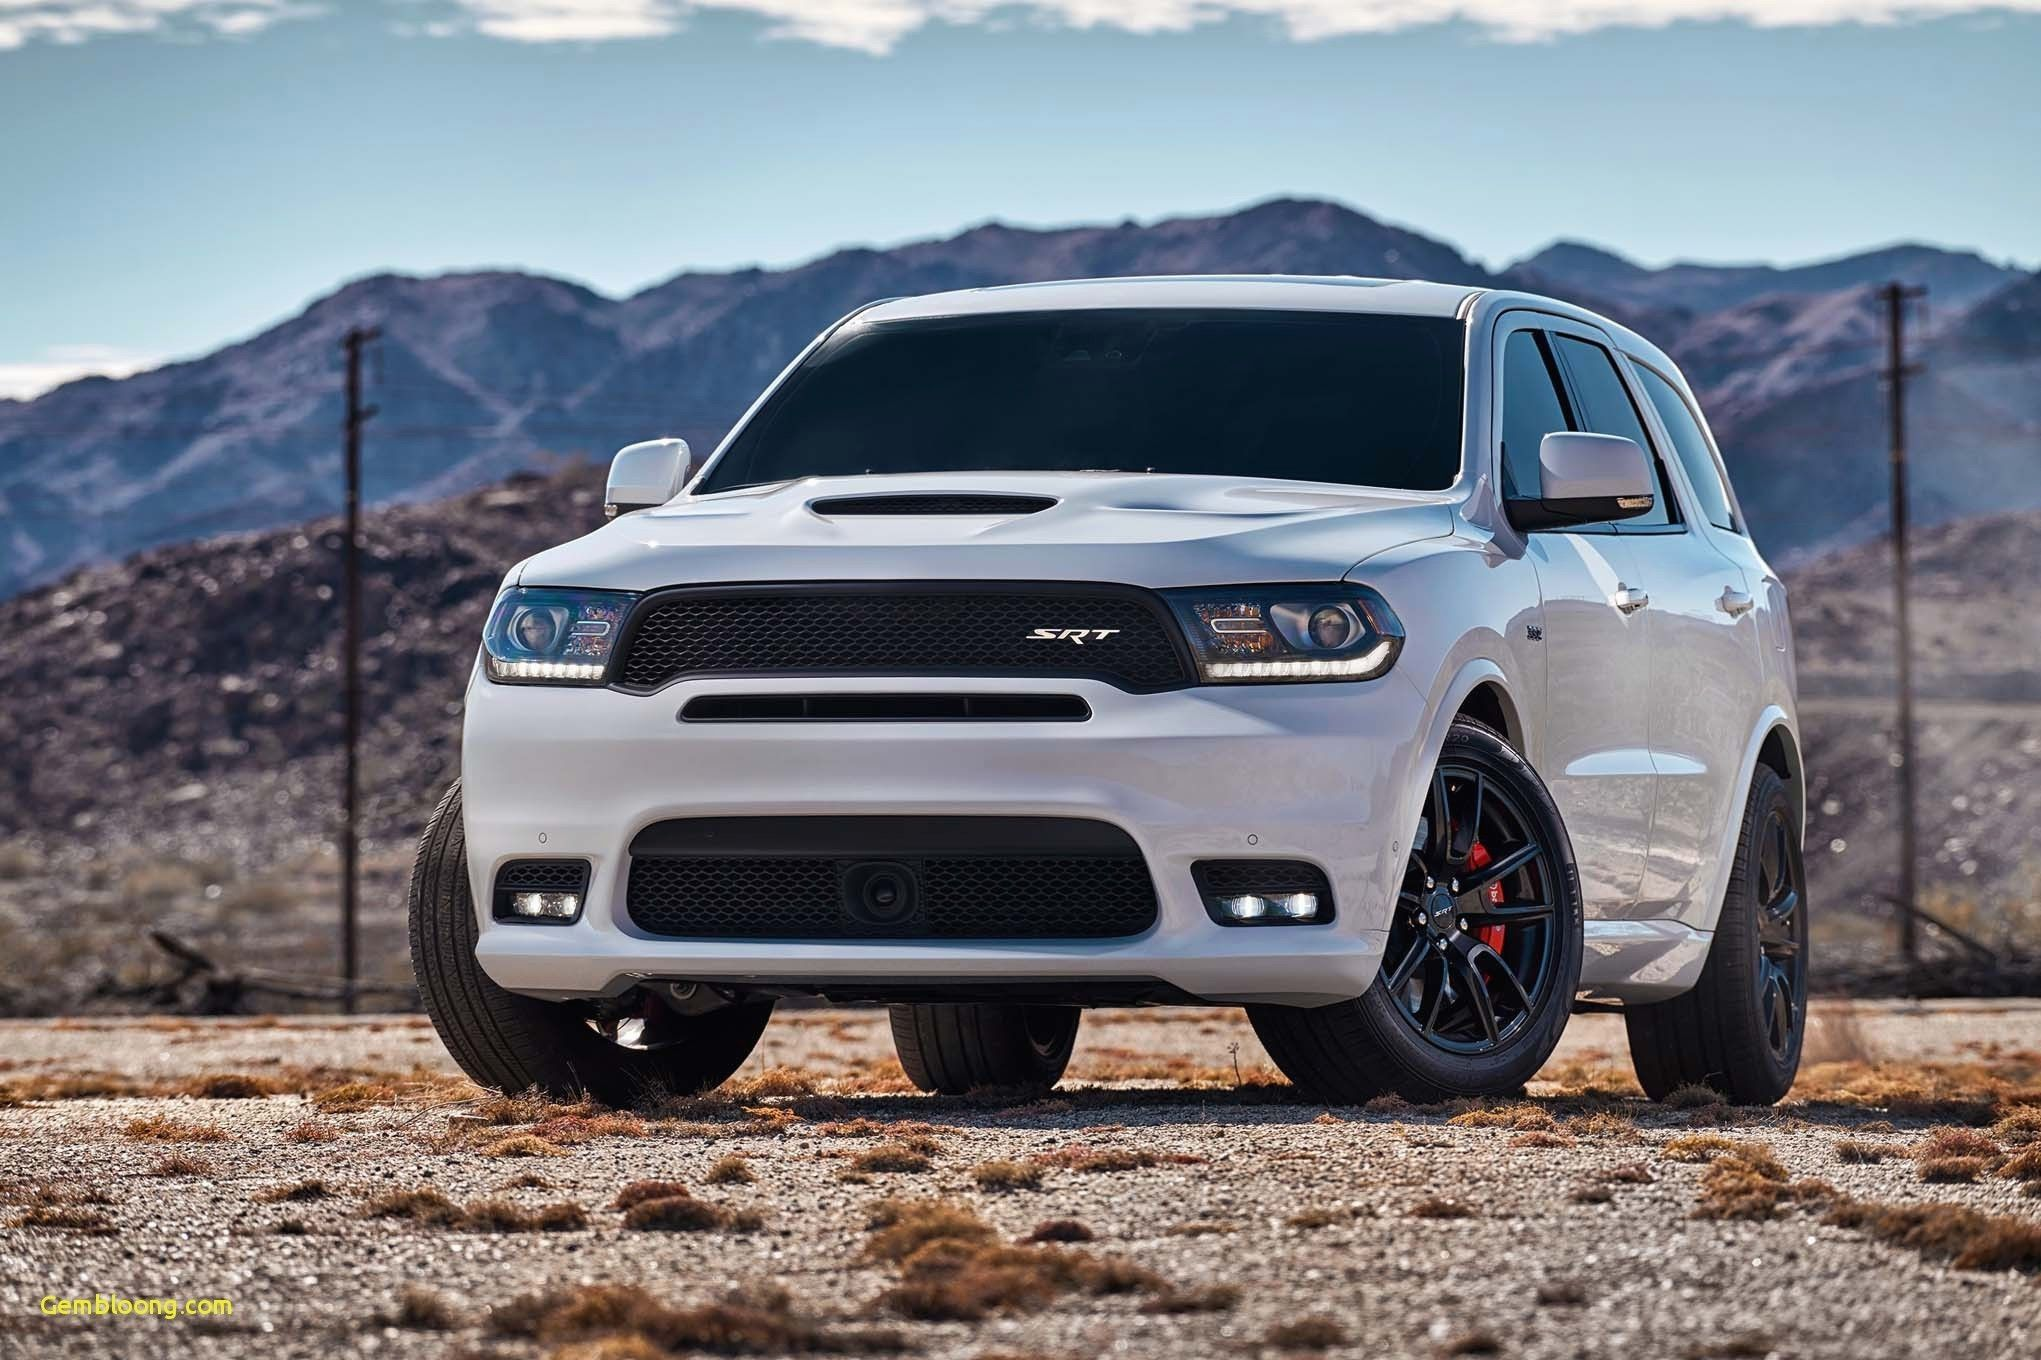 Best Dodge Durango Srt8 Specs And Review Cars Review 2019 Dodge Durango 2018 Dodge 3rd Row Suv